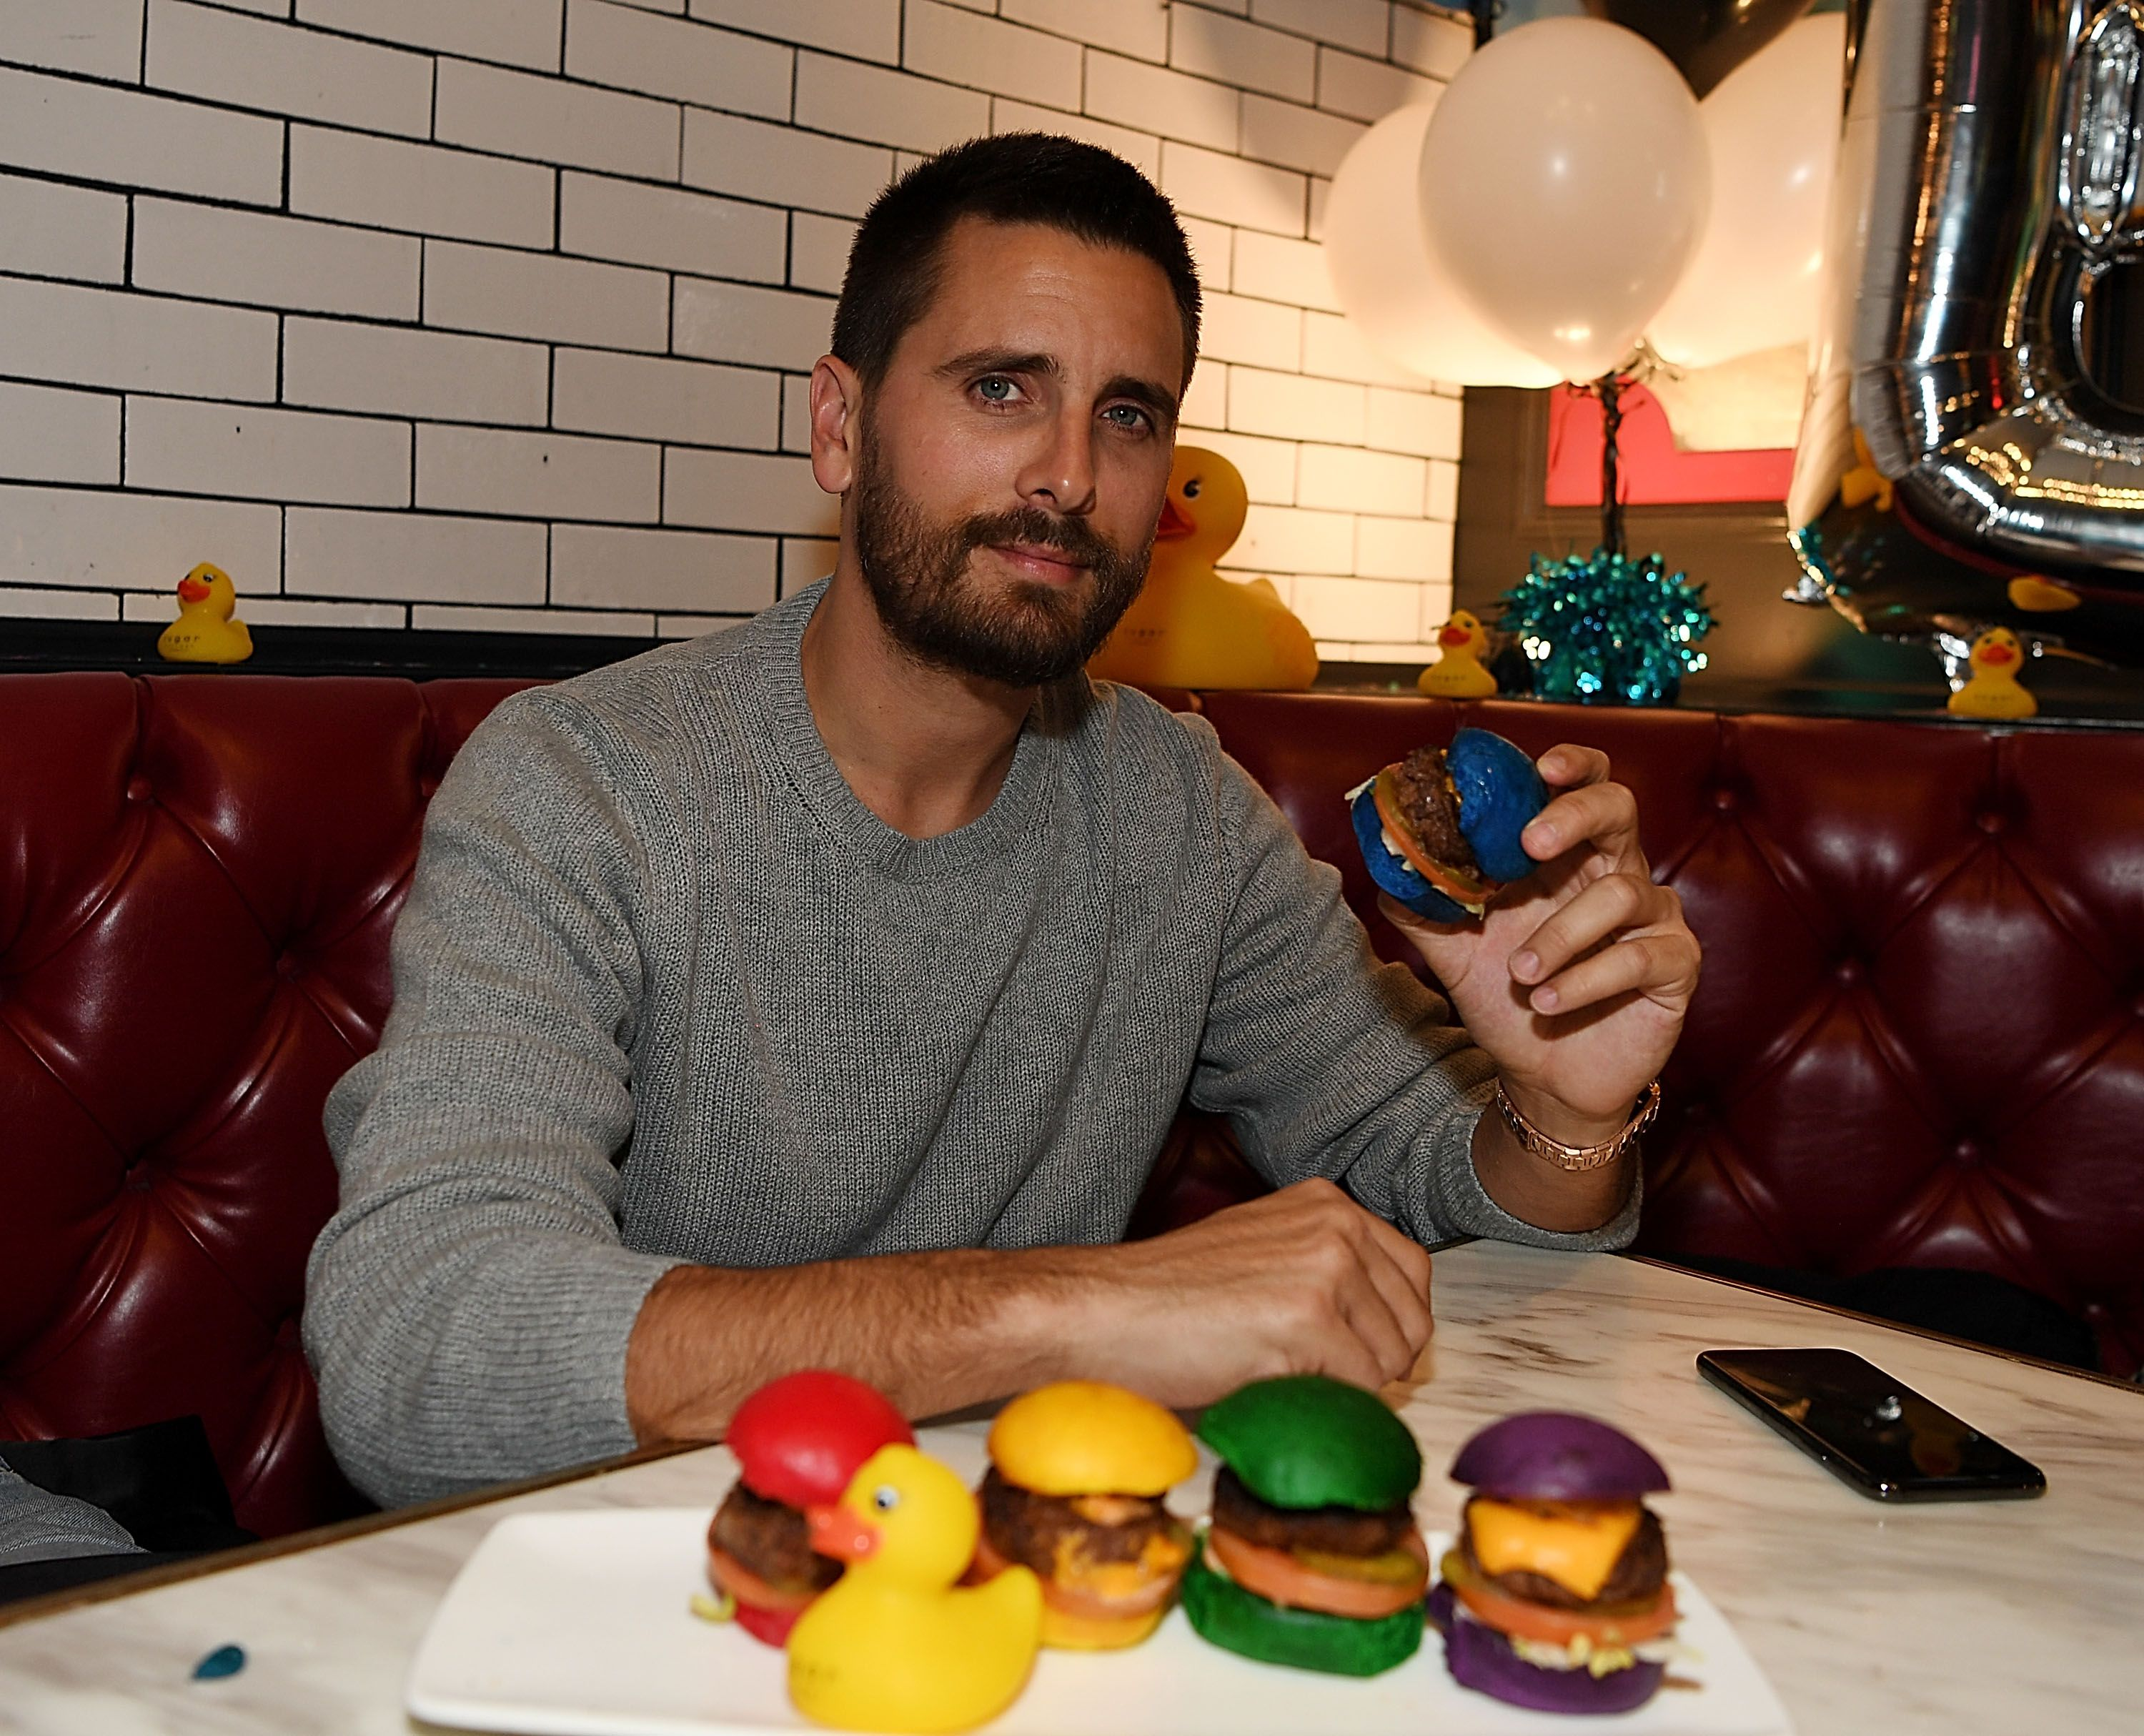 Scott Disick dines at Sugar Factory American Brasserie at Fashion Show Mall on January 4, 2019, in Las Vegas, Nevada | Photo: Denise Truscello/WireImage/Getty Images